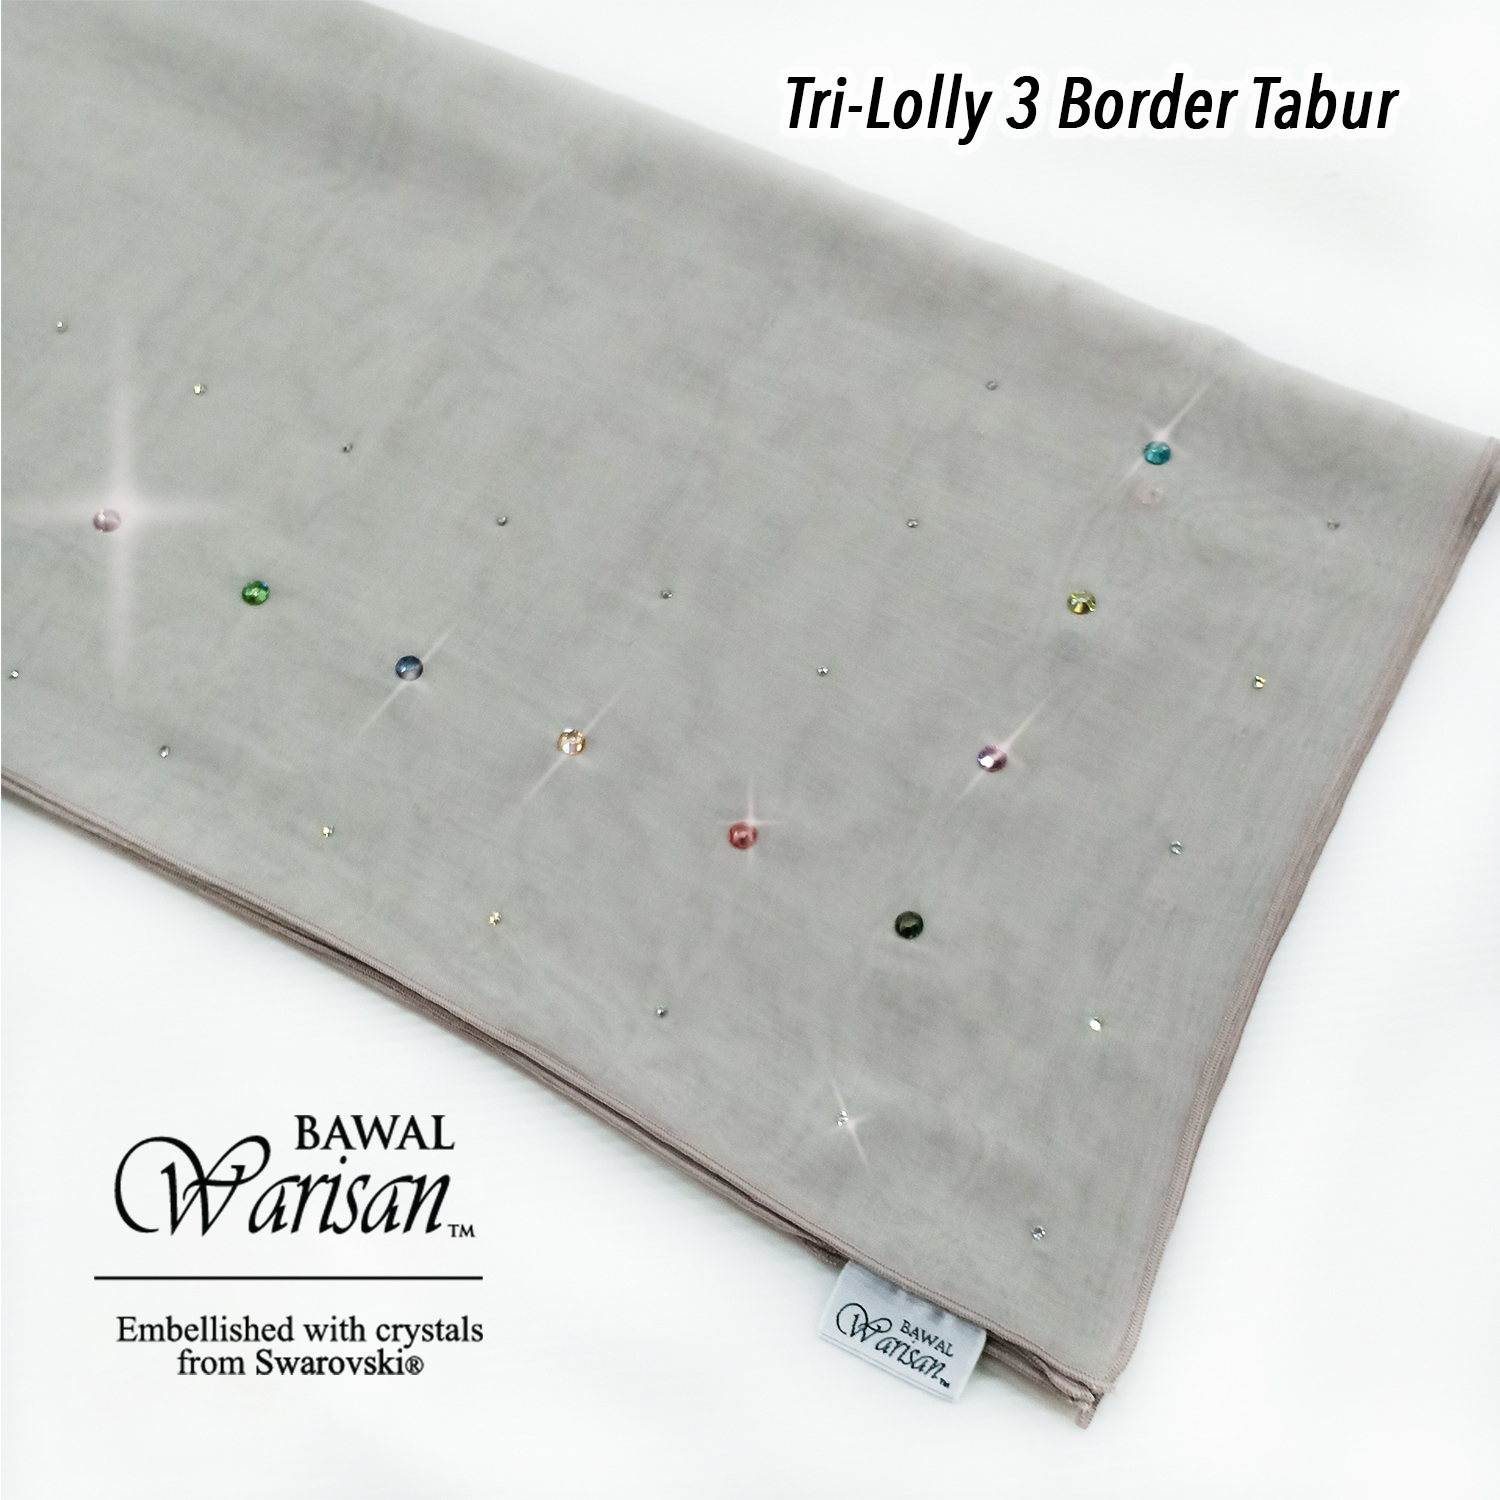 bw tri-lolly 3 border tabur new.jpg